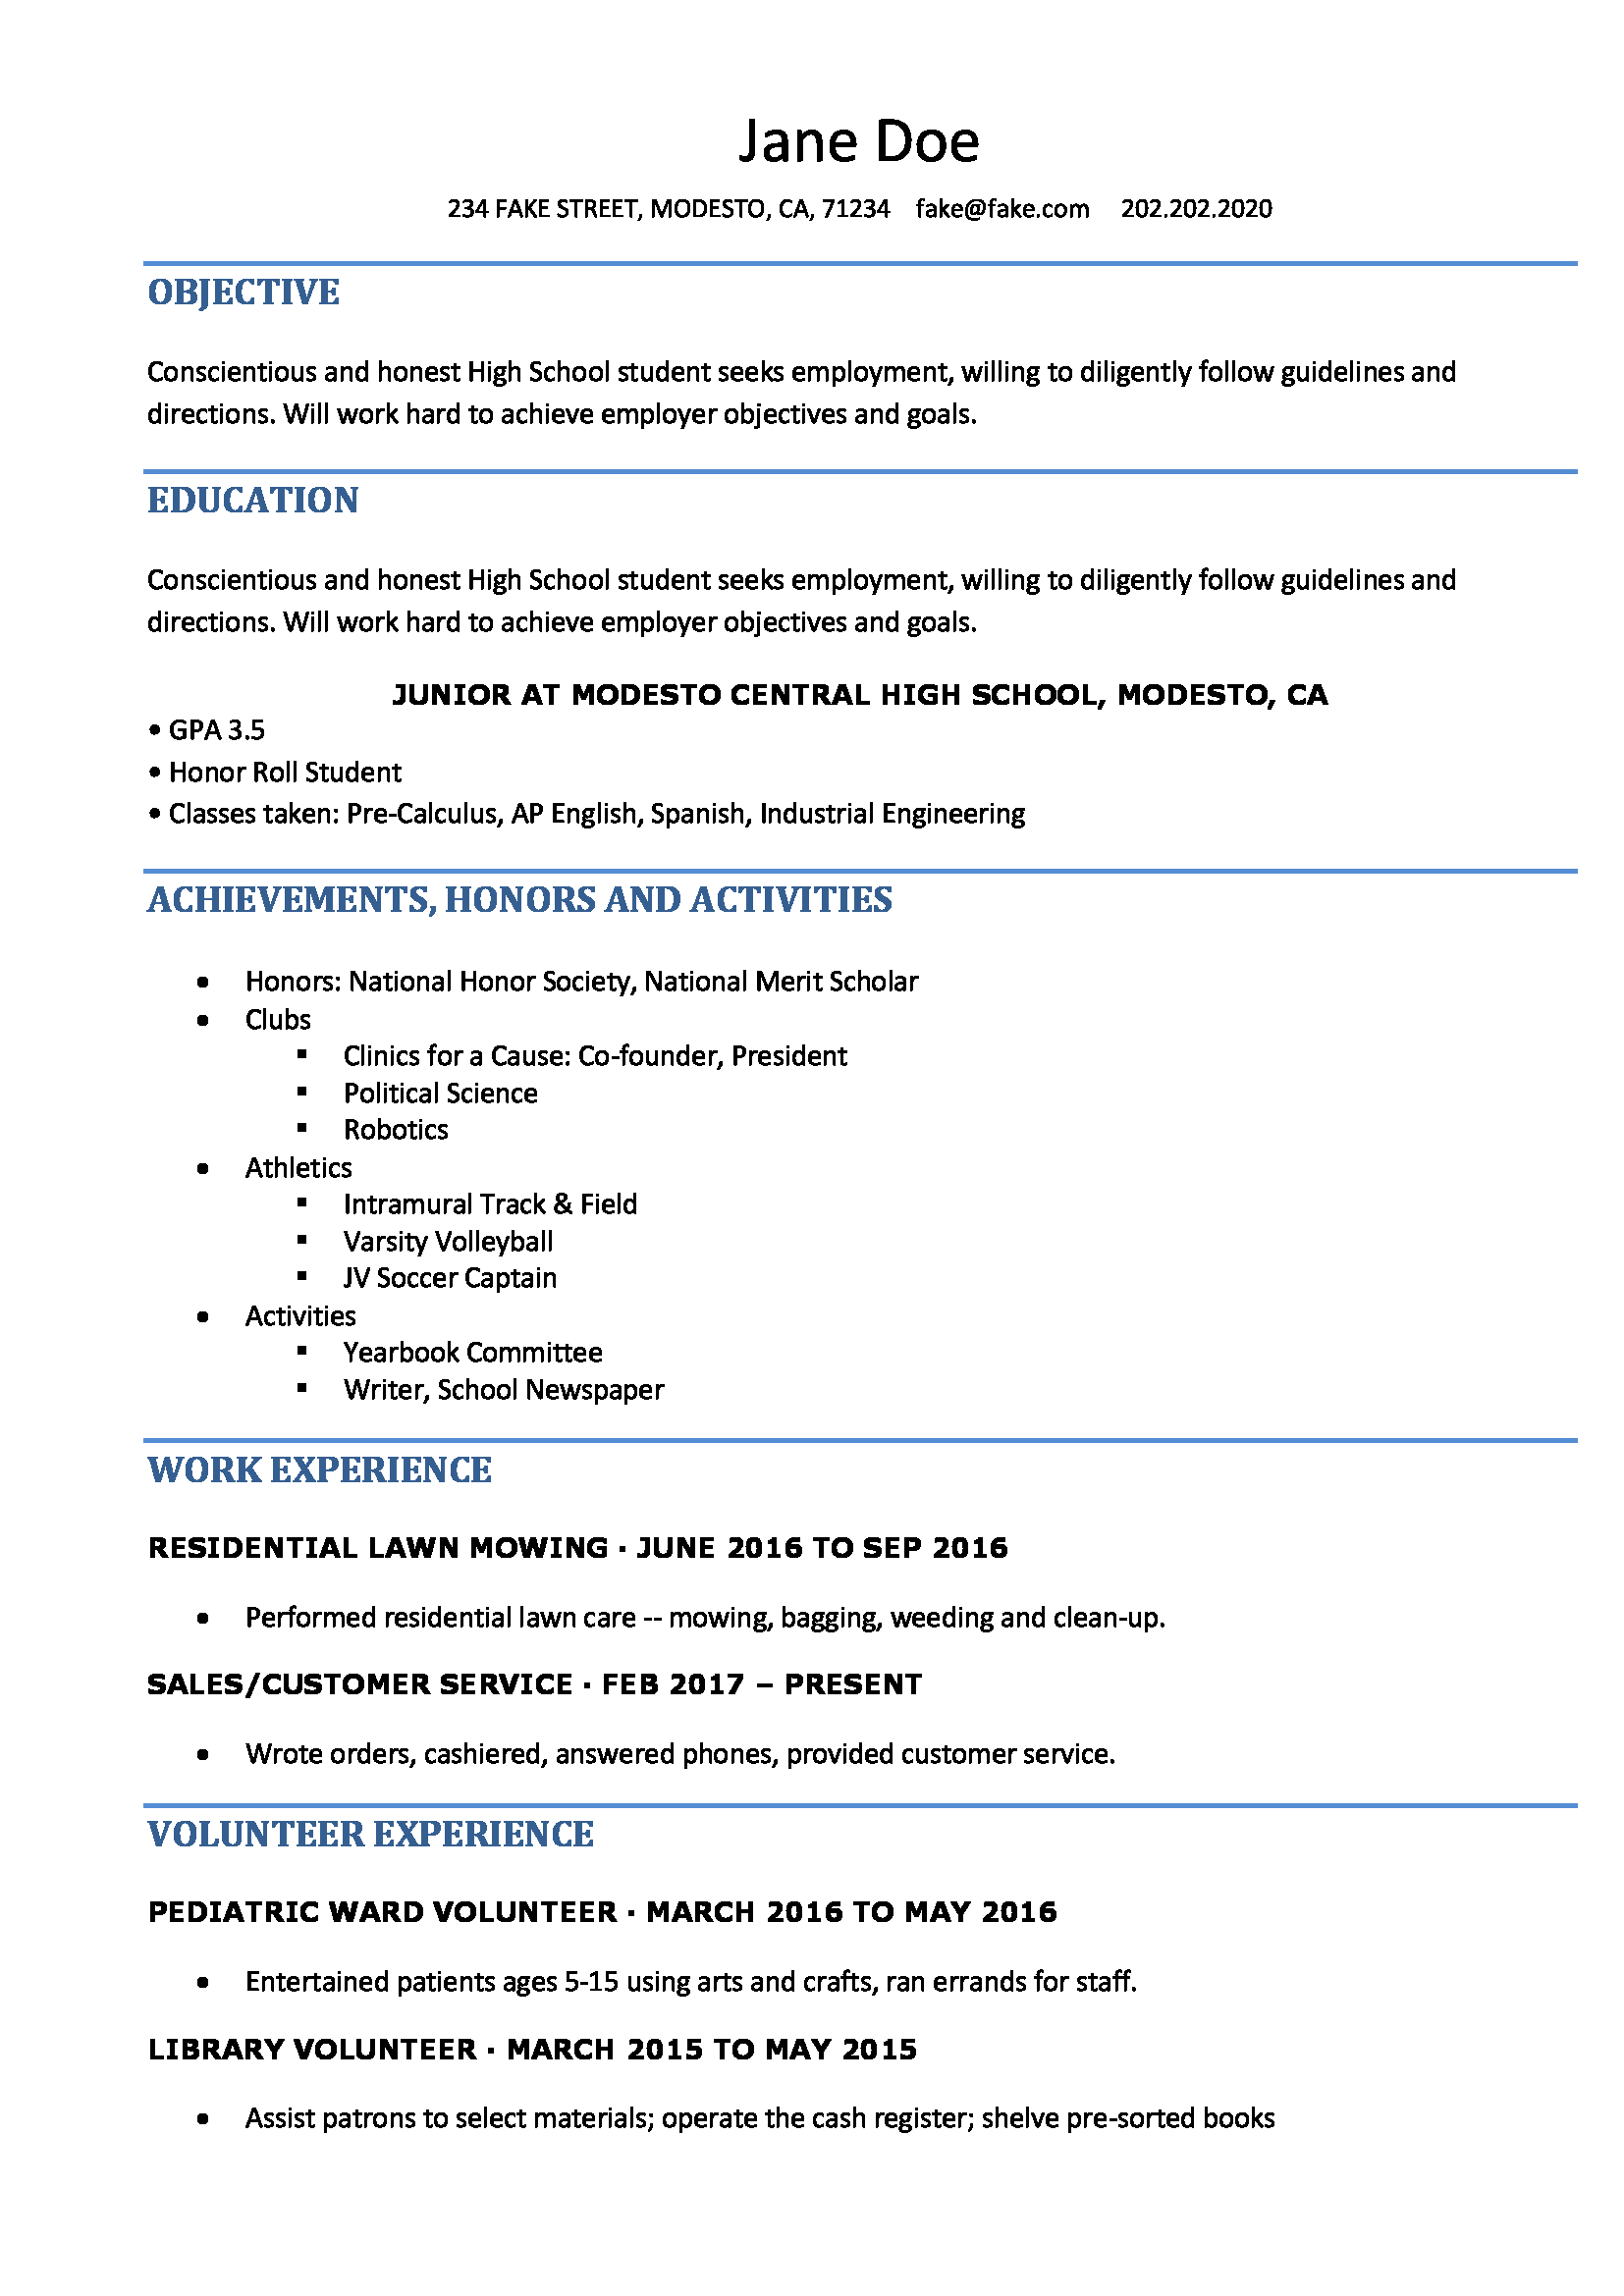 high school resume - resumes perfect for high school students